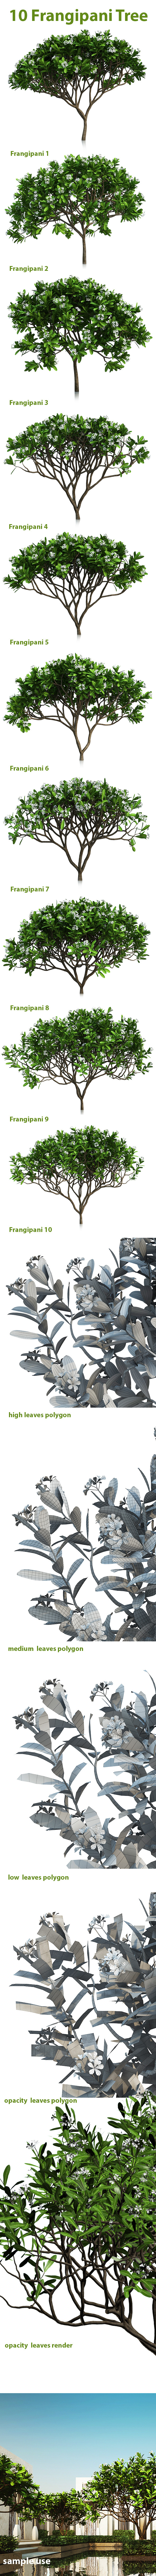 10 Frangipani Tree - 3DOcean Item for Sale